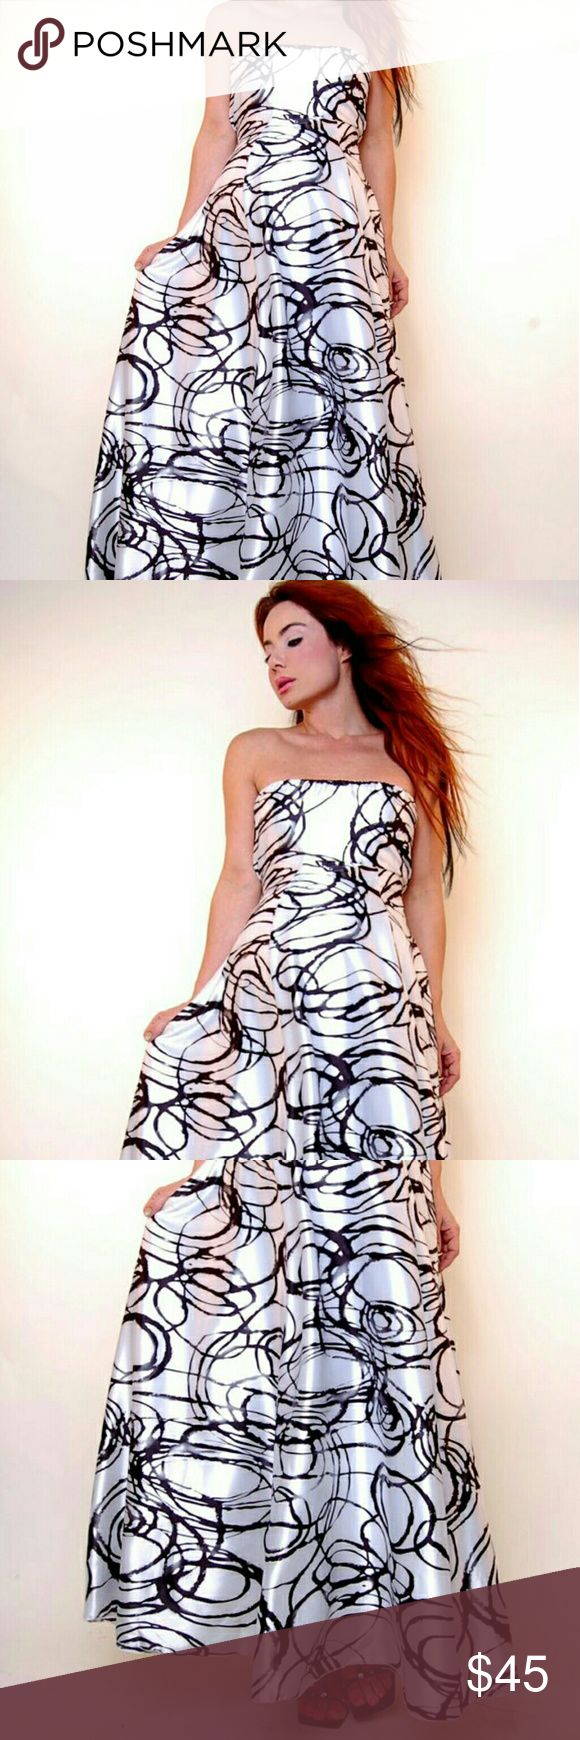 66 best maternity dresses skirts images on pinterest dress nicole michelle dream on maternity gown nwt ombrellifo Choice Image